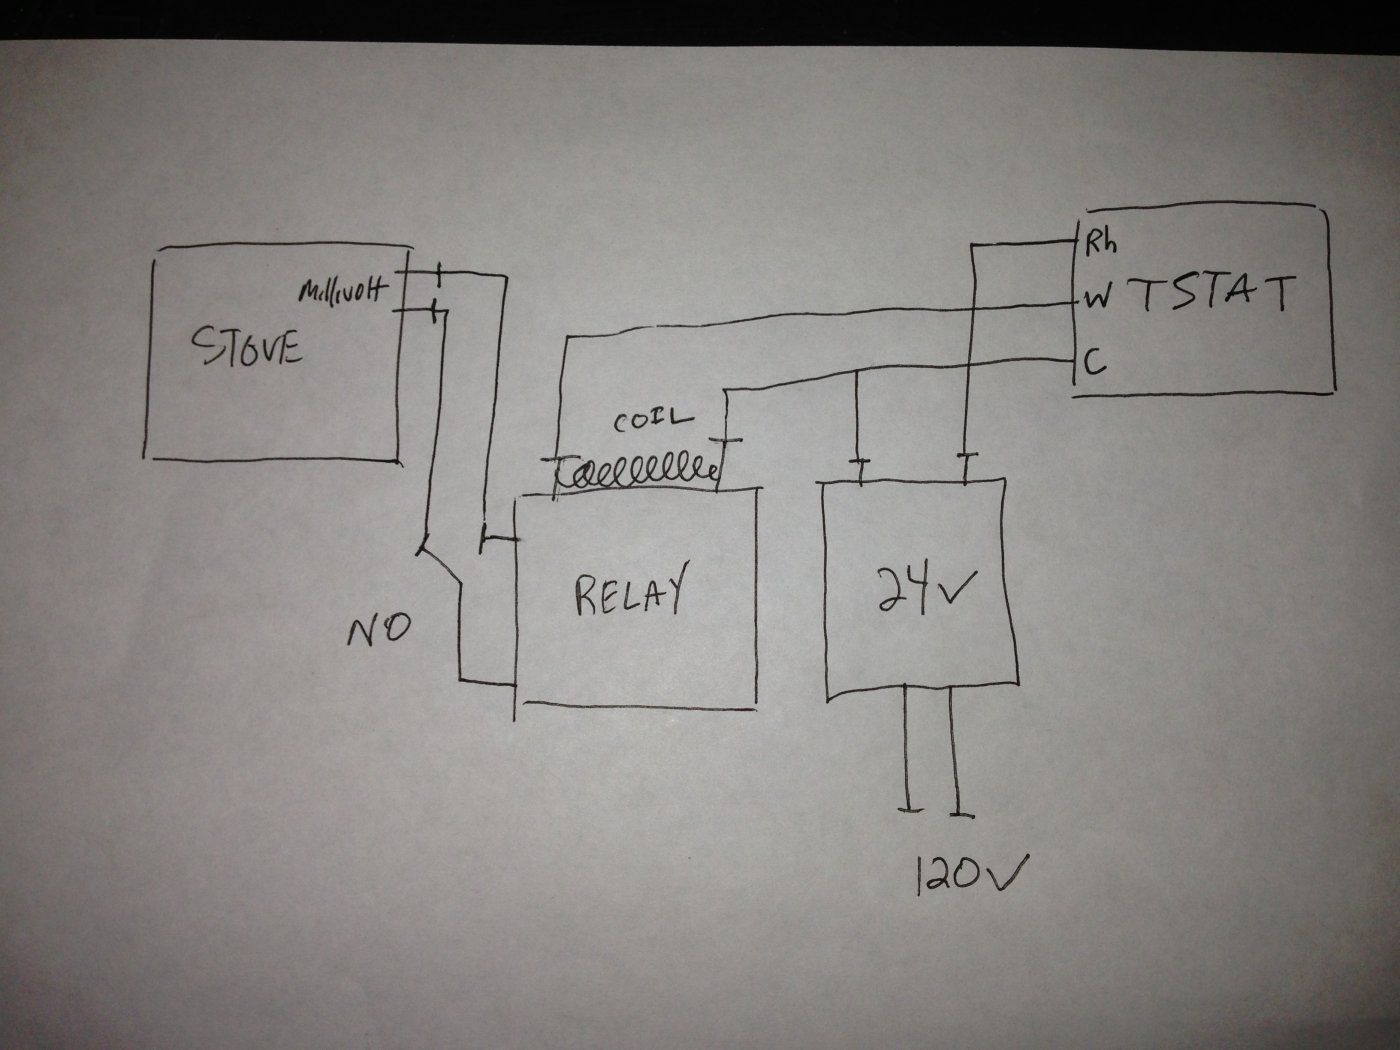 installing 24 volt wifi thermostat on millivolt stoves page 4 rib relay wiring diagram at panicattacktreatment.co